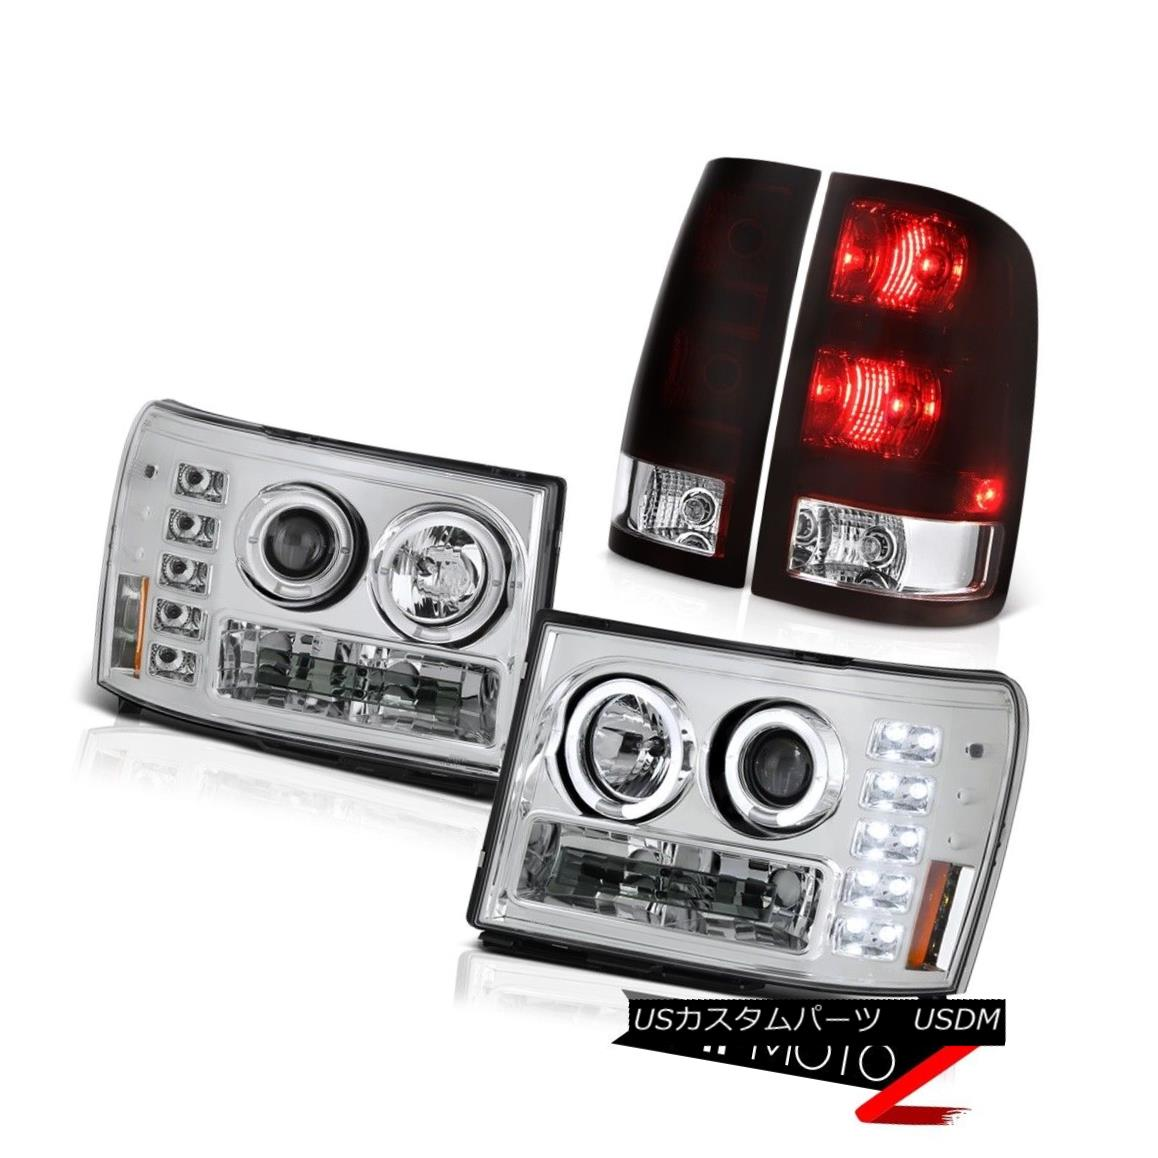 ヘッドライト 07-13 GMC Sierra 1500 Denali Taillamps Euro Chrome Headlights Dual Halo Assembly 07-13 GMC Sierra 1500 Denali Taillampsユーロクロームヘッドライトデュアルヘイローアセンブリ